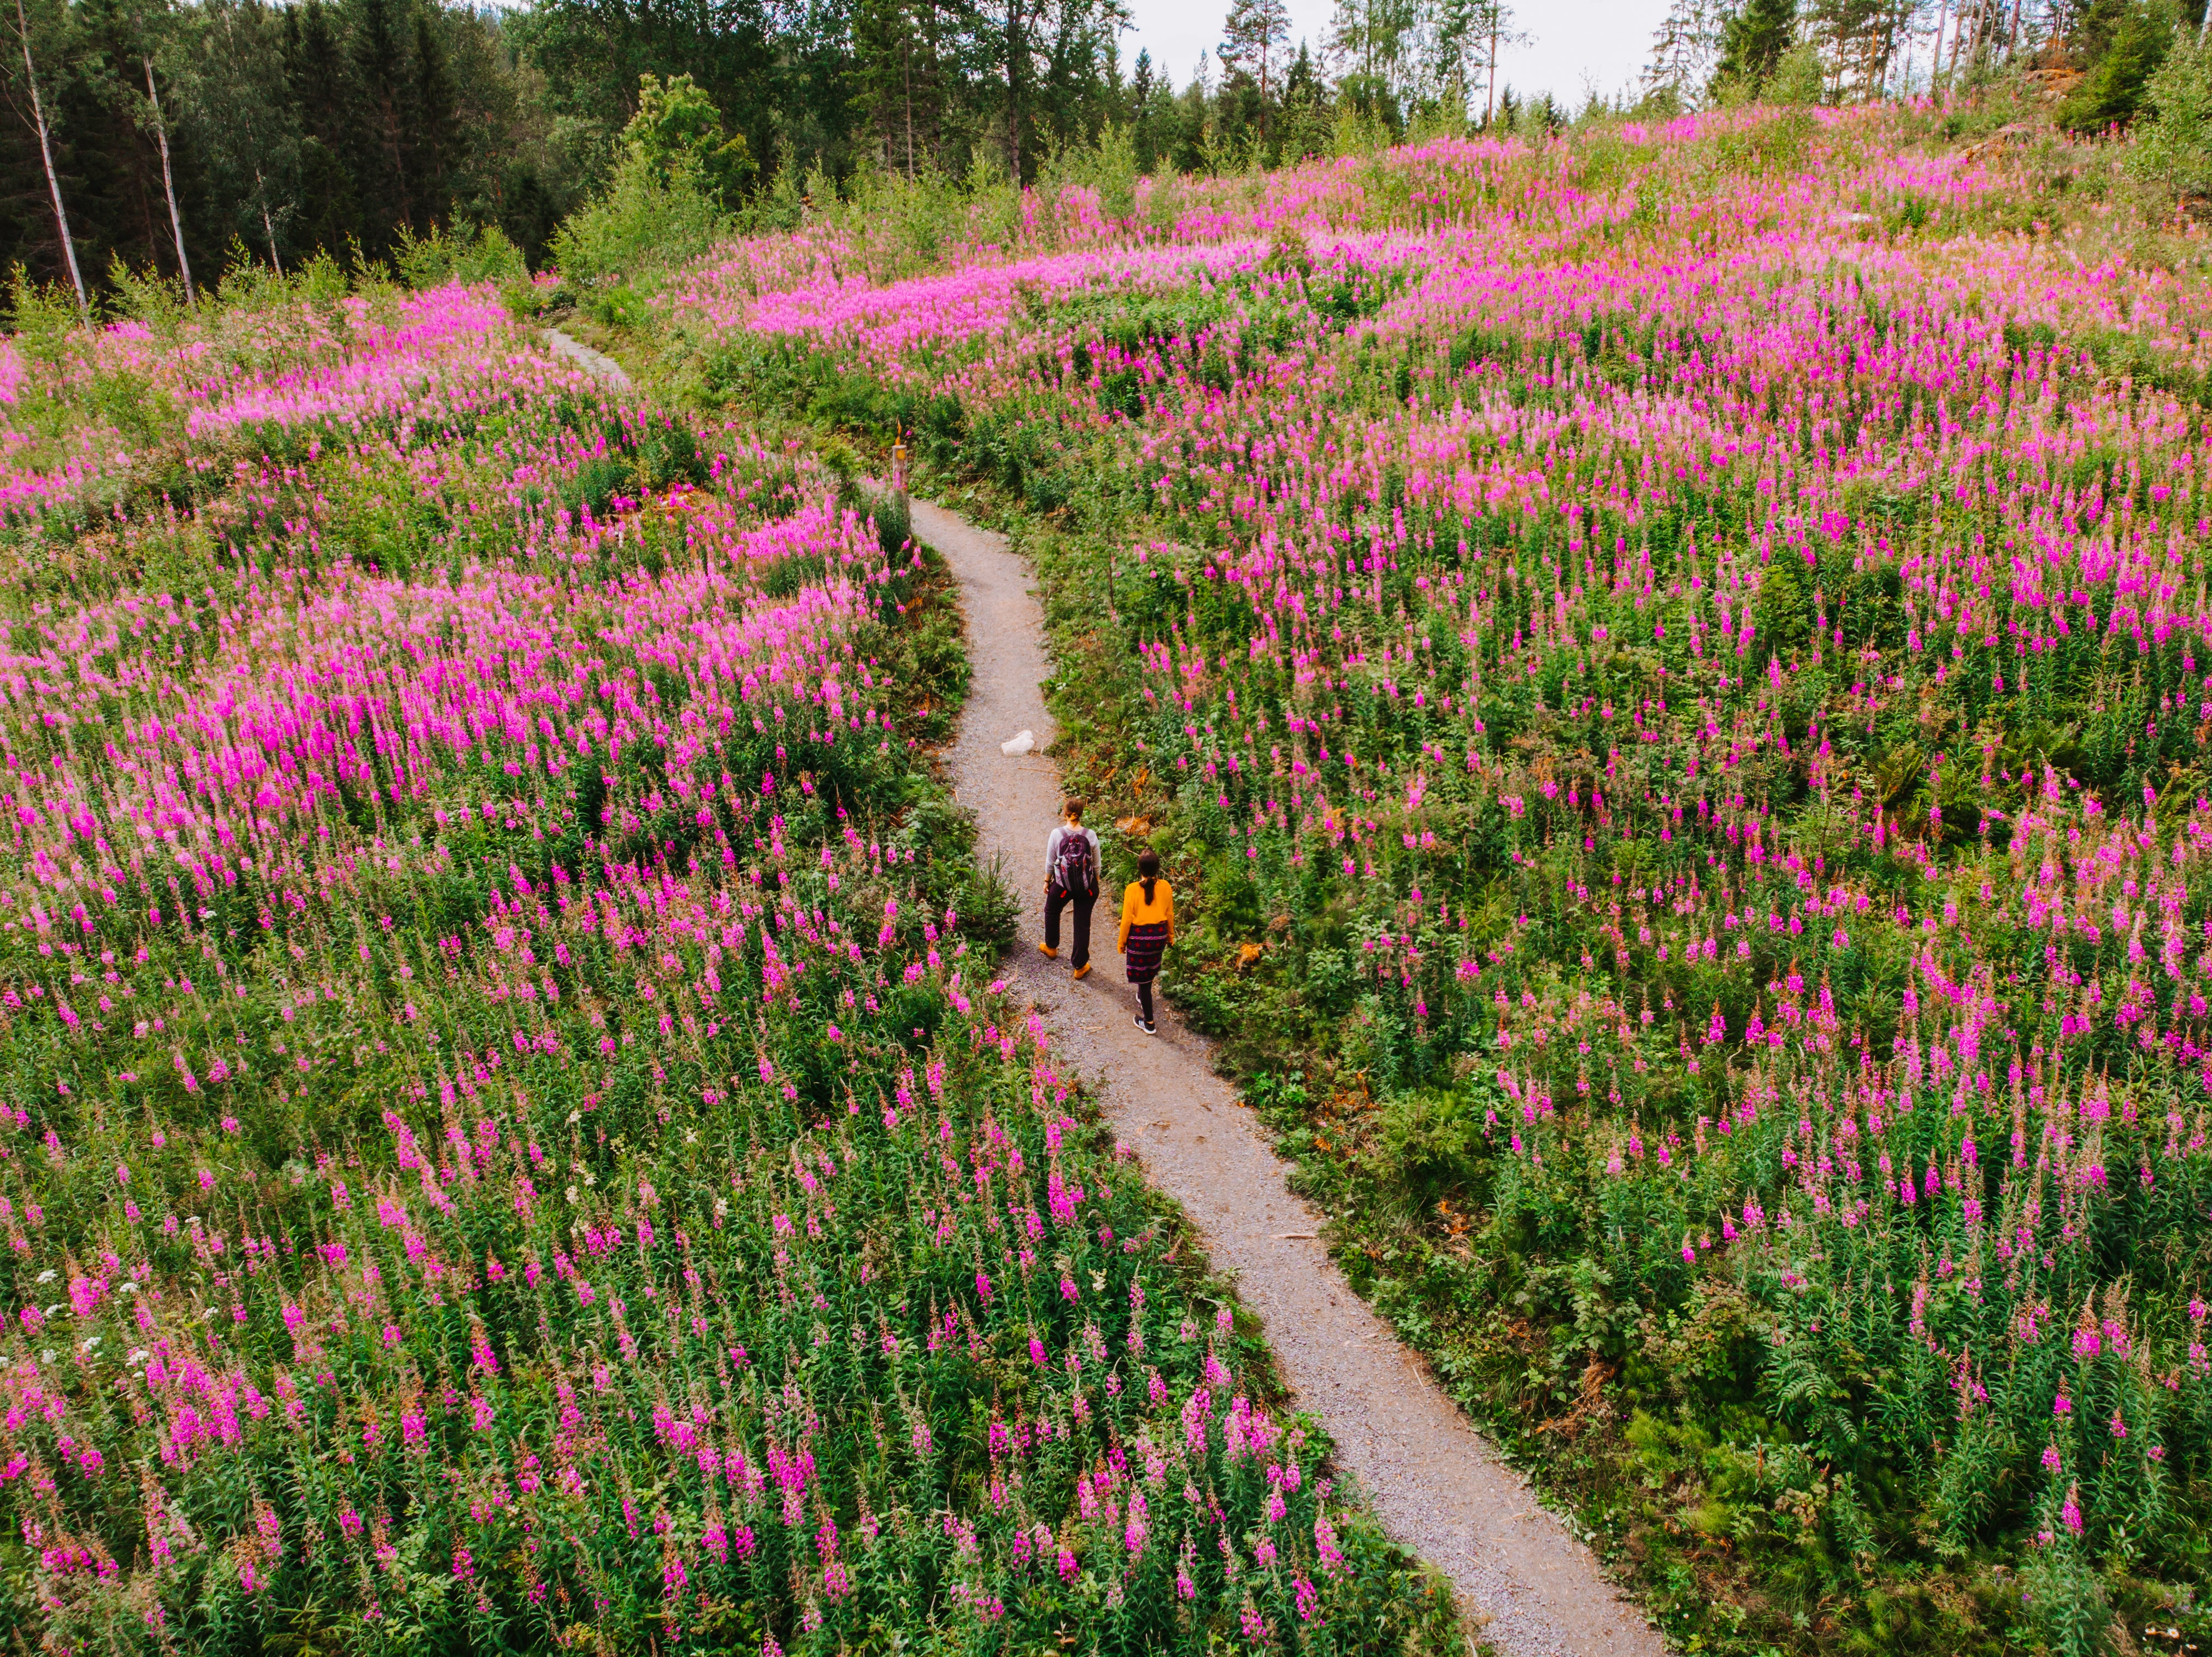 Landscape in Finland - hiking in a national park